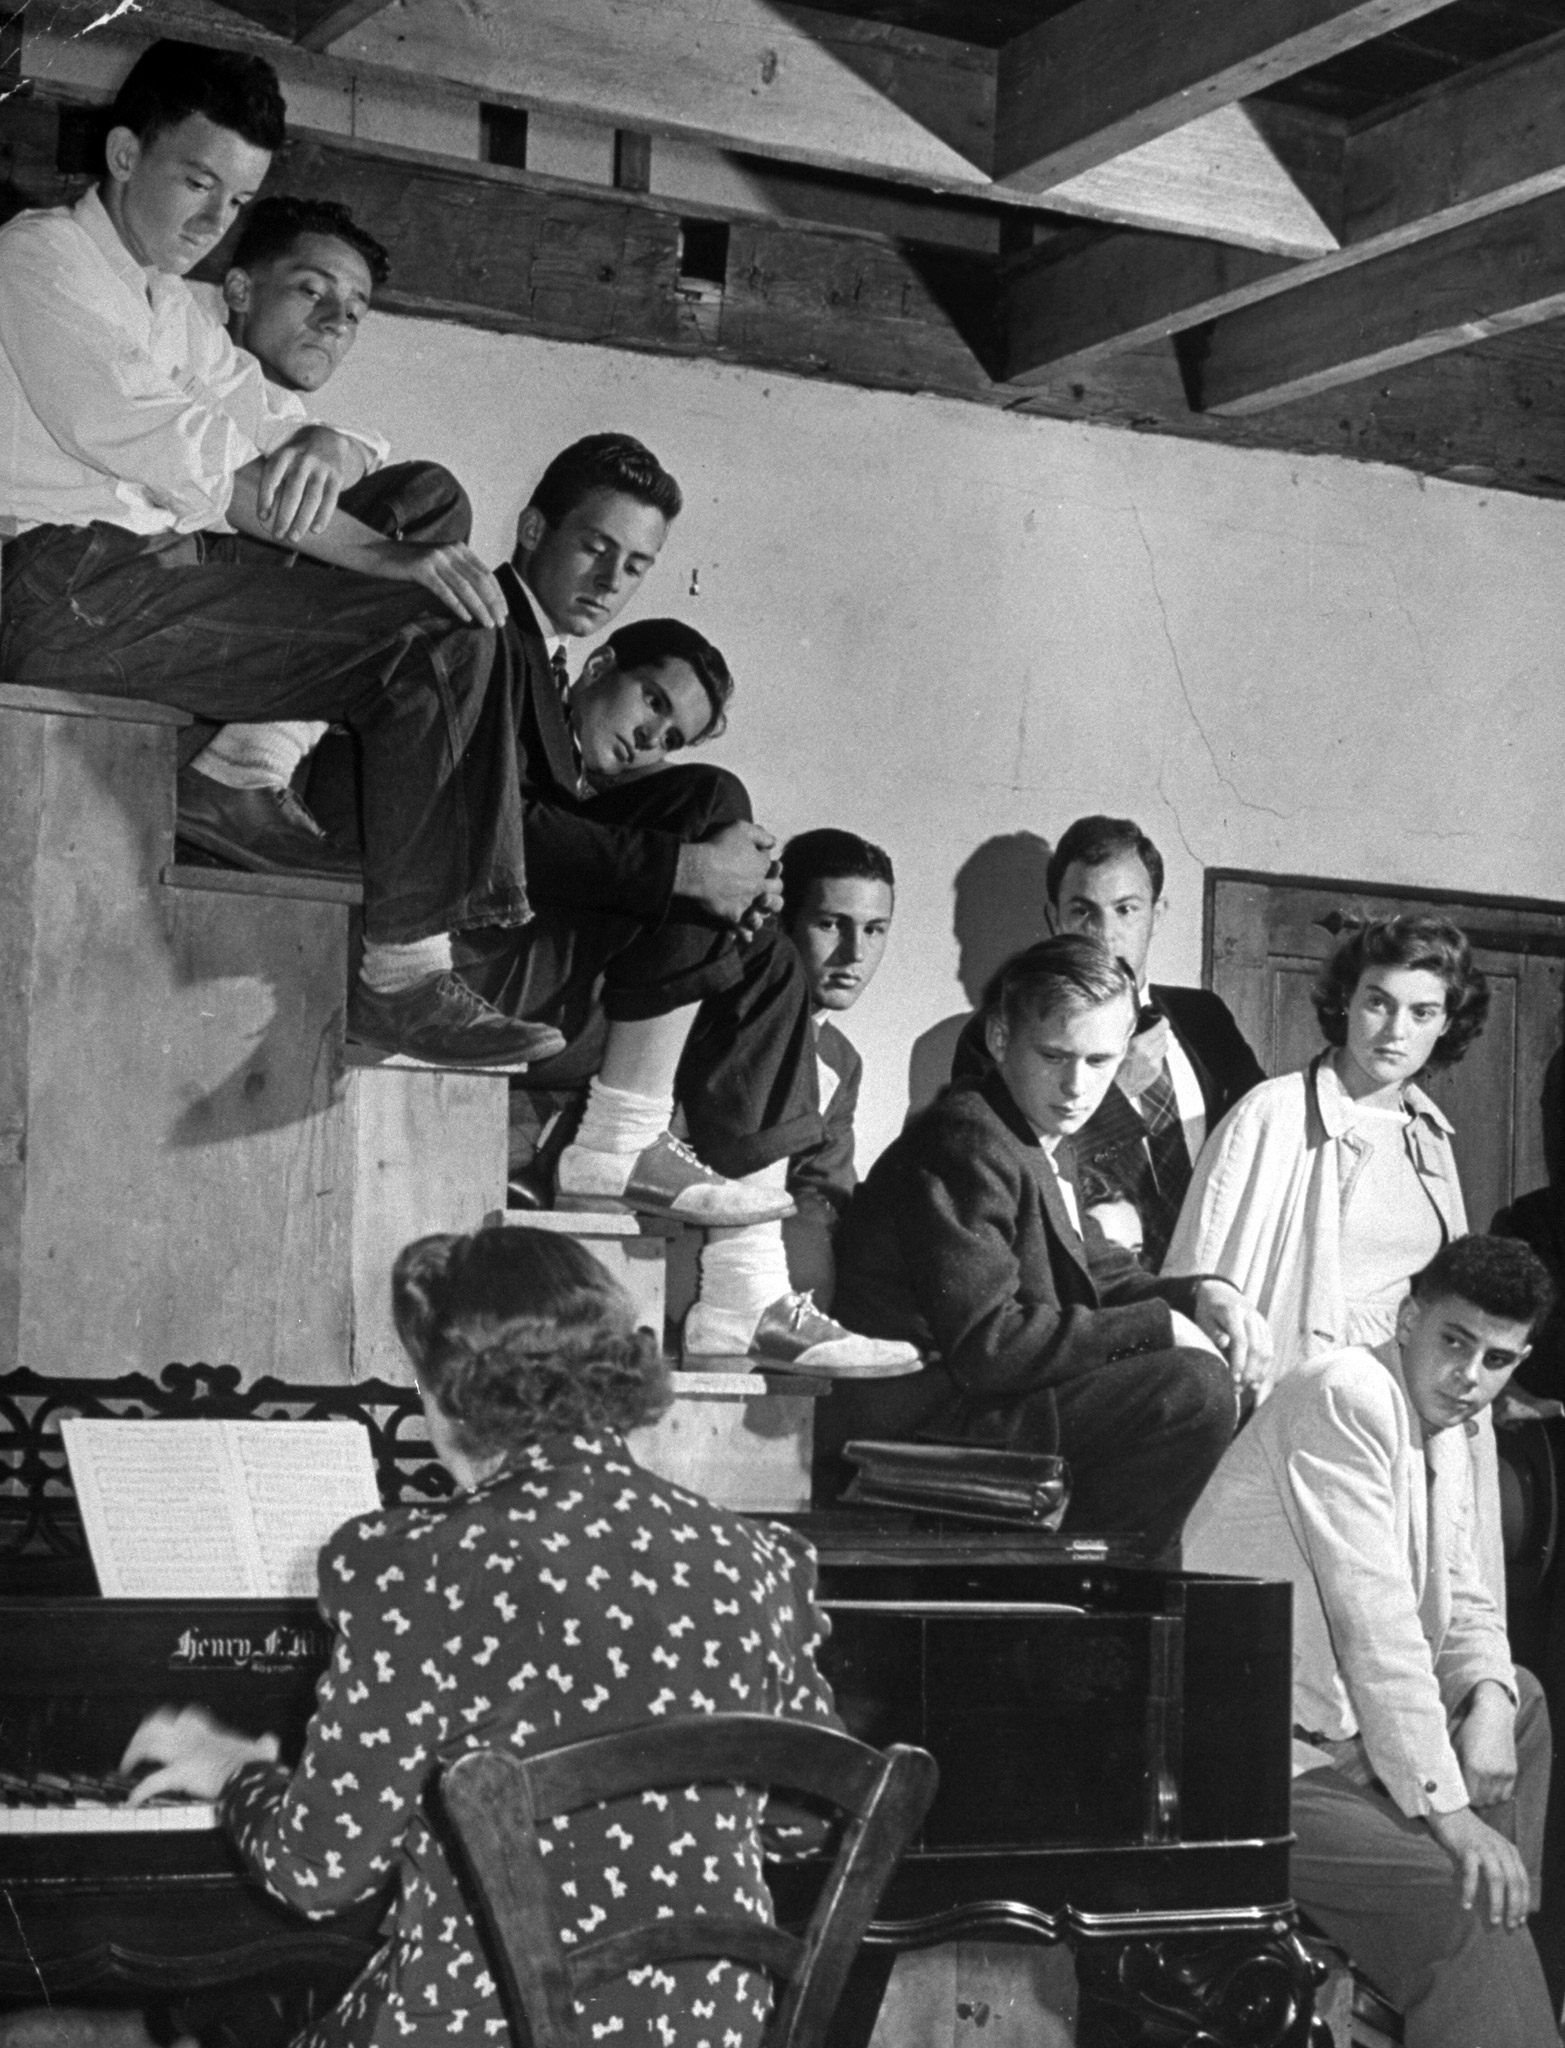 <b>Caption from LIFE.</b> Sober young audience for the music of skillful Ania Dorfmann, concert pianist, includes these Land Corps boys and girls, in the studio of Miss Thompson's home. This part of house was once a barn, built about 1840. The unrailed stairs lead to loft above.